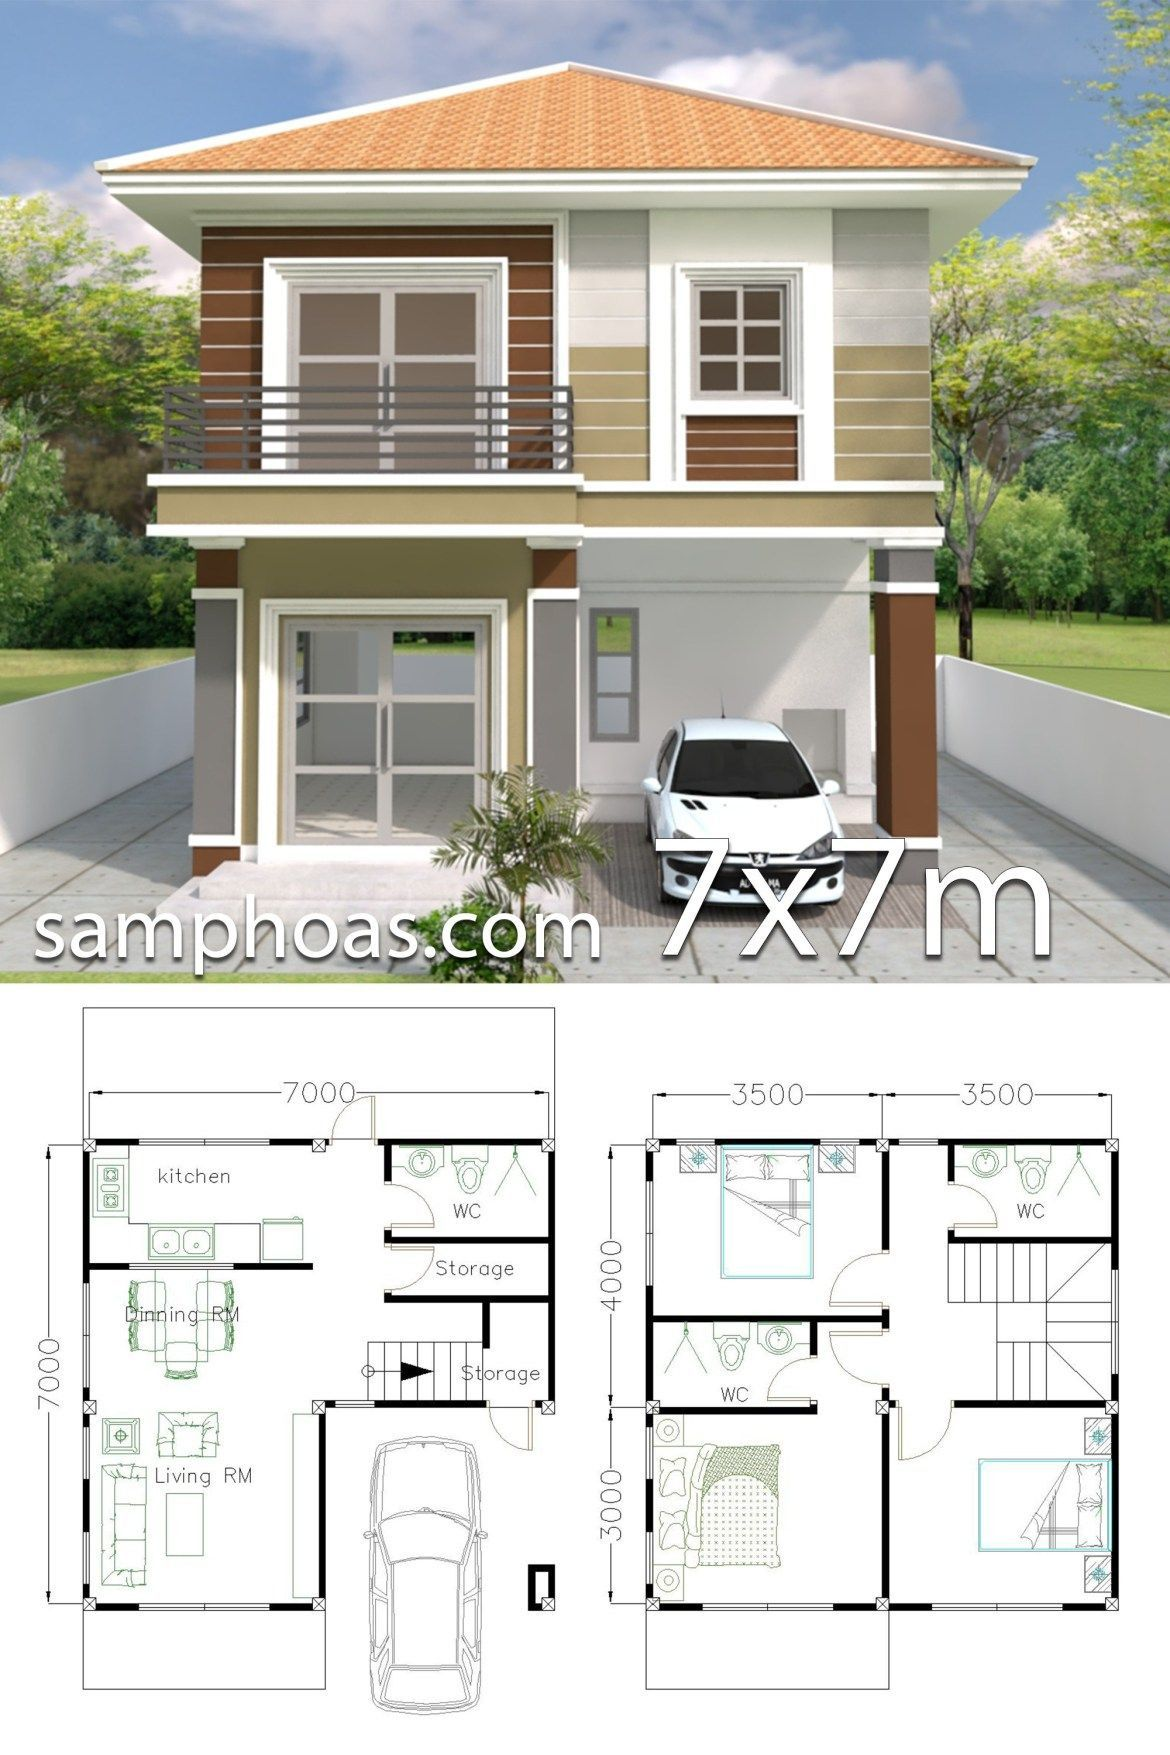 How To Design Floor Plans For House 2020 Small Modern House Plans Duplex House Design Small House Design Plans